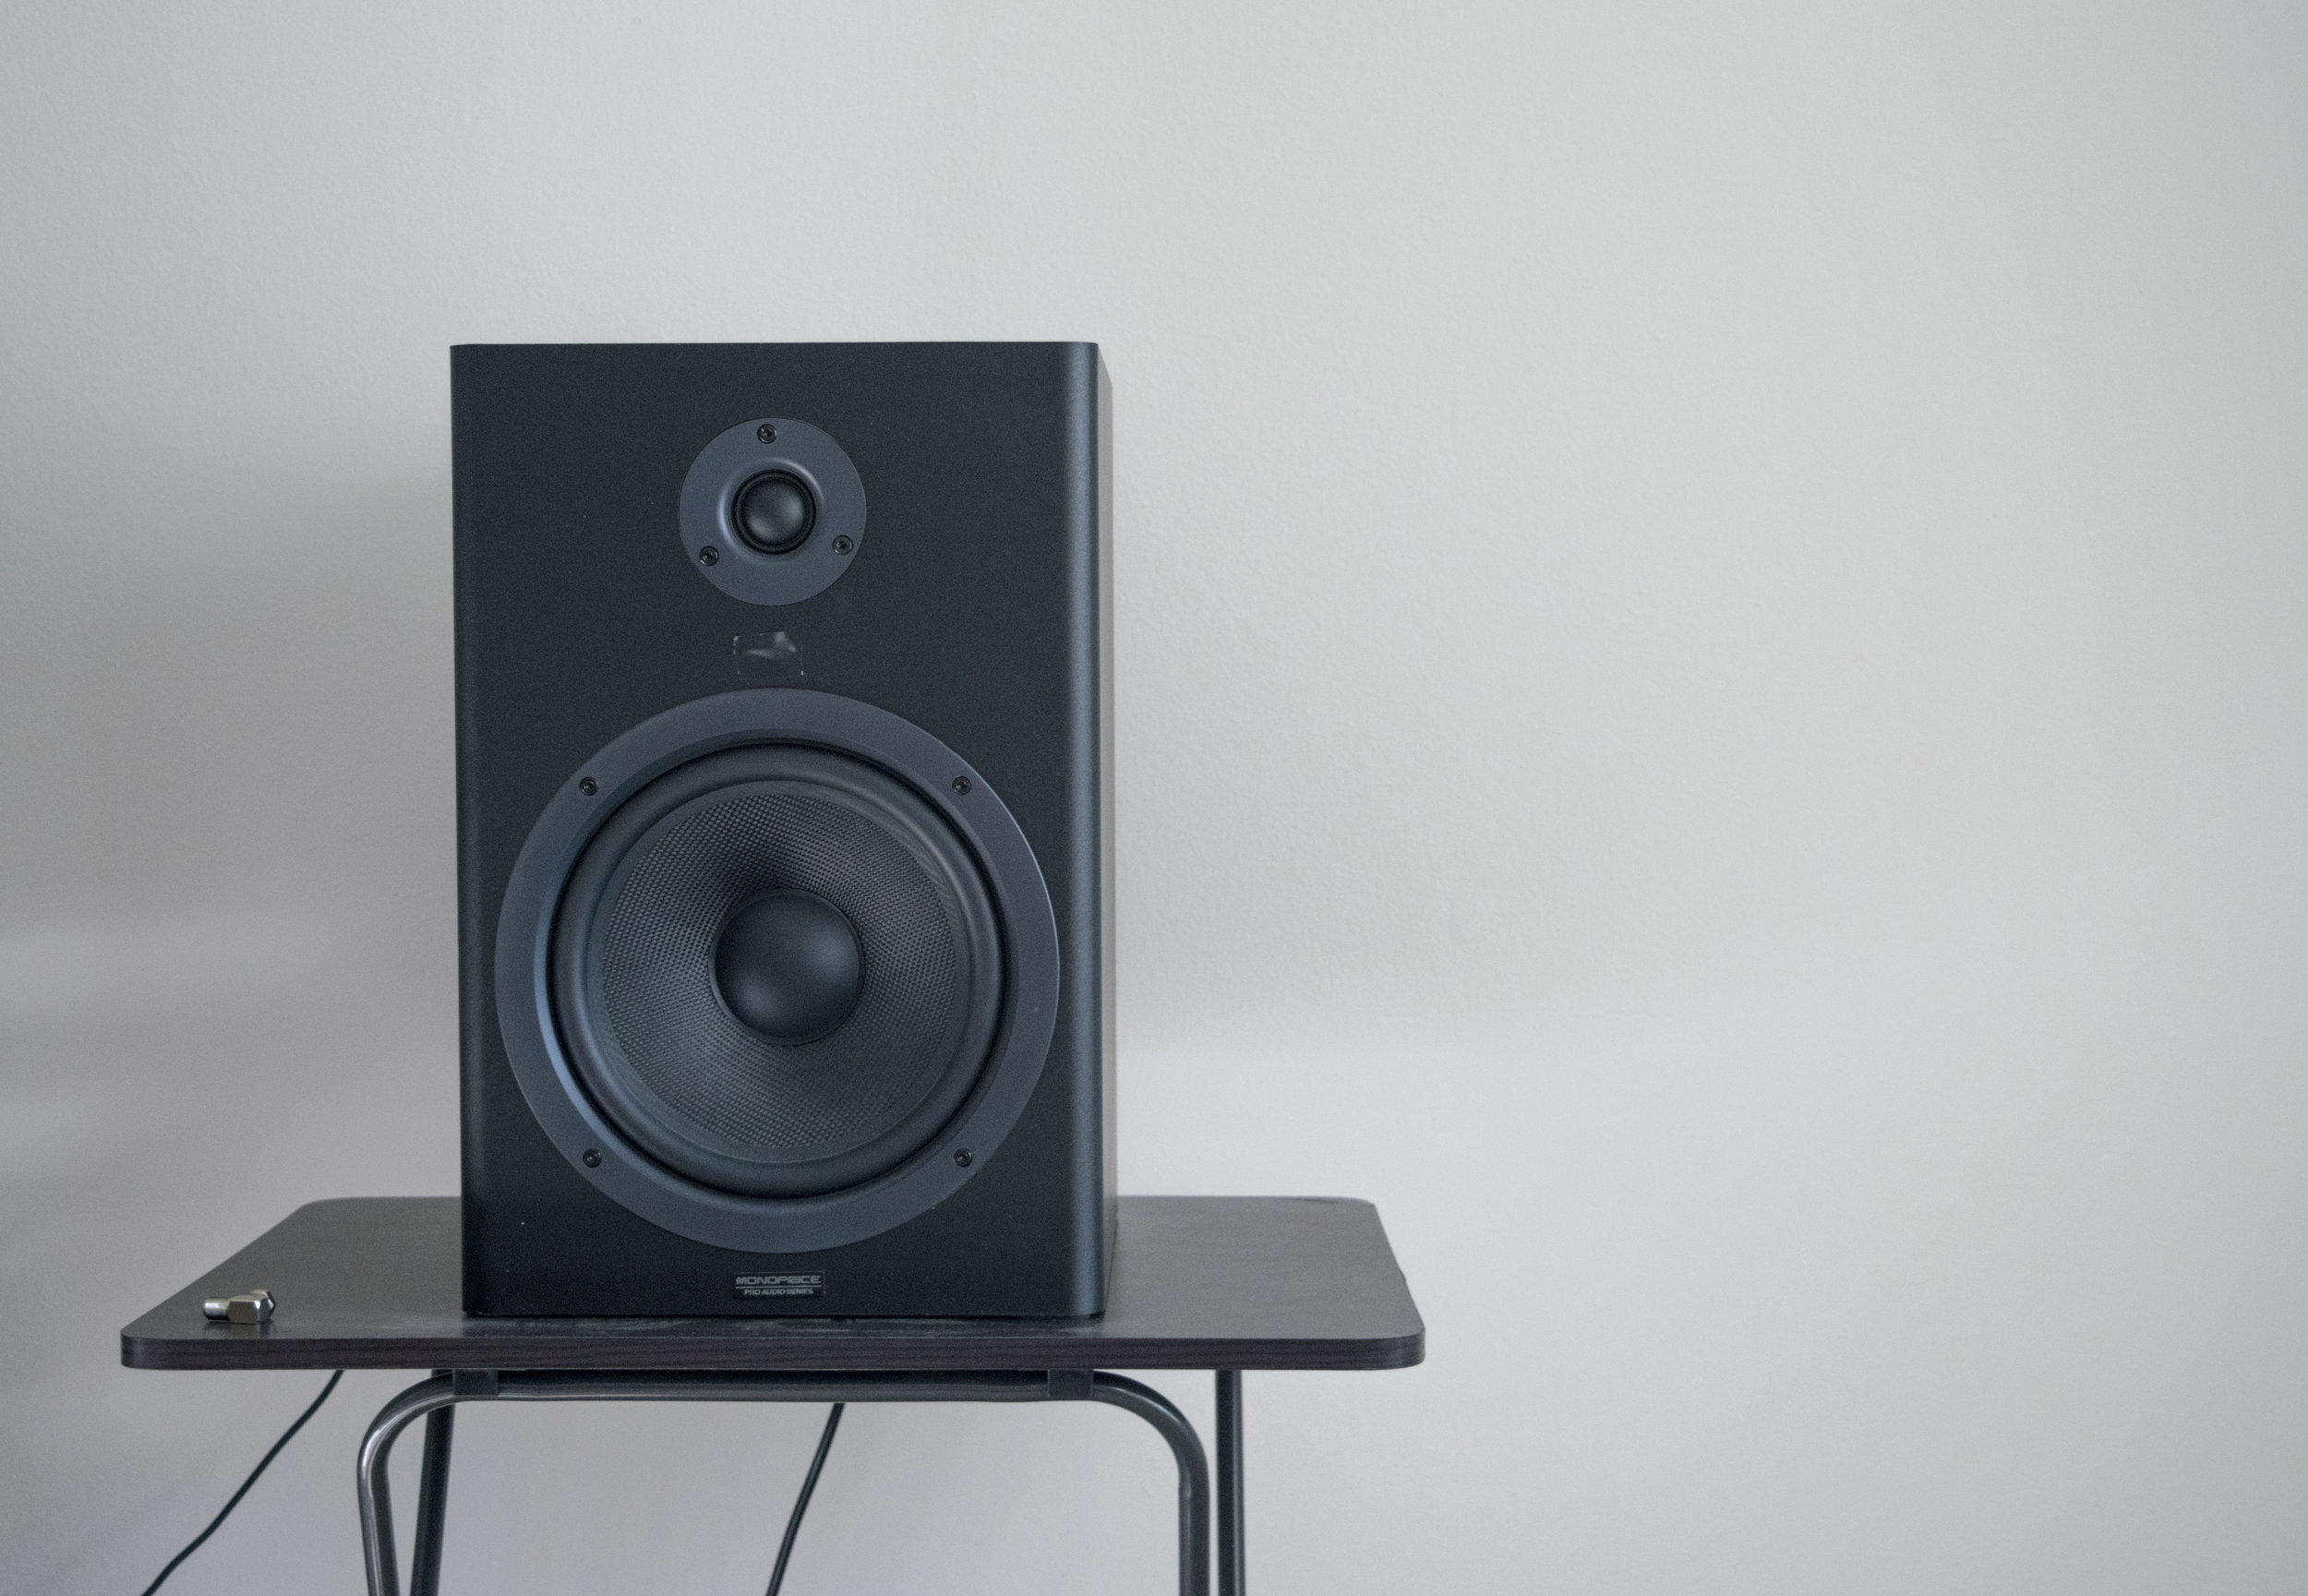 Professional PA System - Speakers like the one above aren't going to make for a good party outside of your living room. You need a professional PA system to get your dance floor bouncing. Most DJs and Bands will be able to supply these for you or you could try a local AV hire company. The trick here is to ensure you book a PA that is suitable for your audience size, and if you want to have that really rich, club-like sound go for a professional brand PA with both tops and subwoofers. If your venue requires that you use their in-house PA, find out what they use, if they have a 'decibel limit', how they plug in their live acts and then run this by your entertainment well in advance.